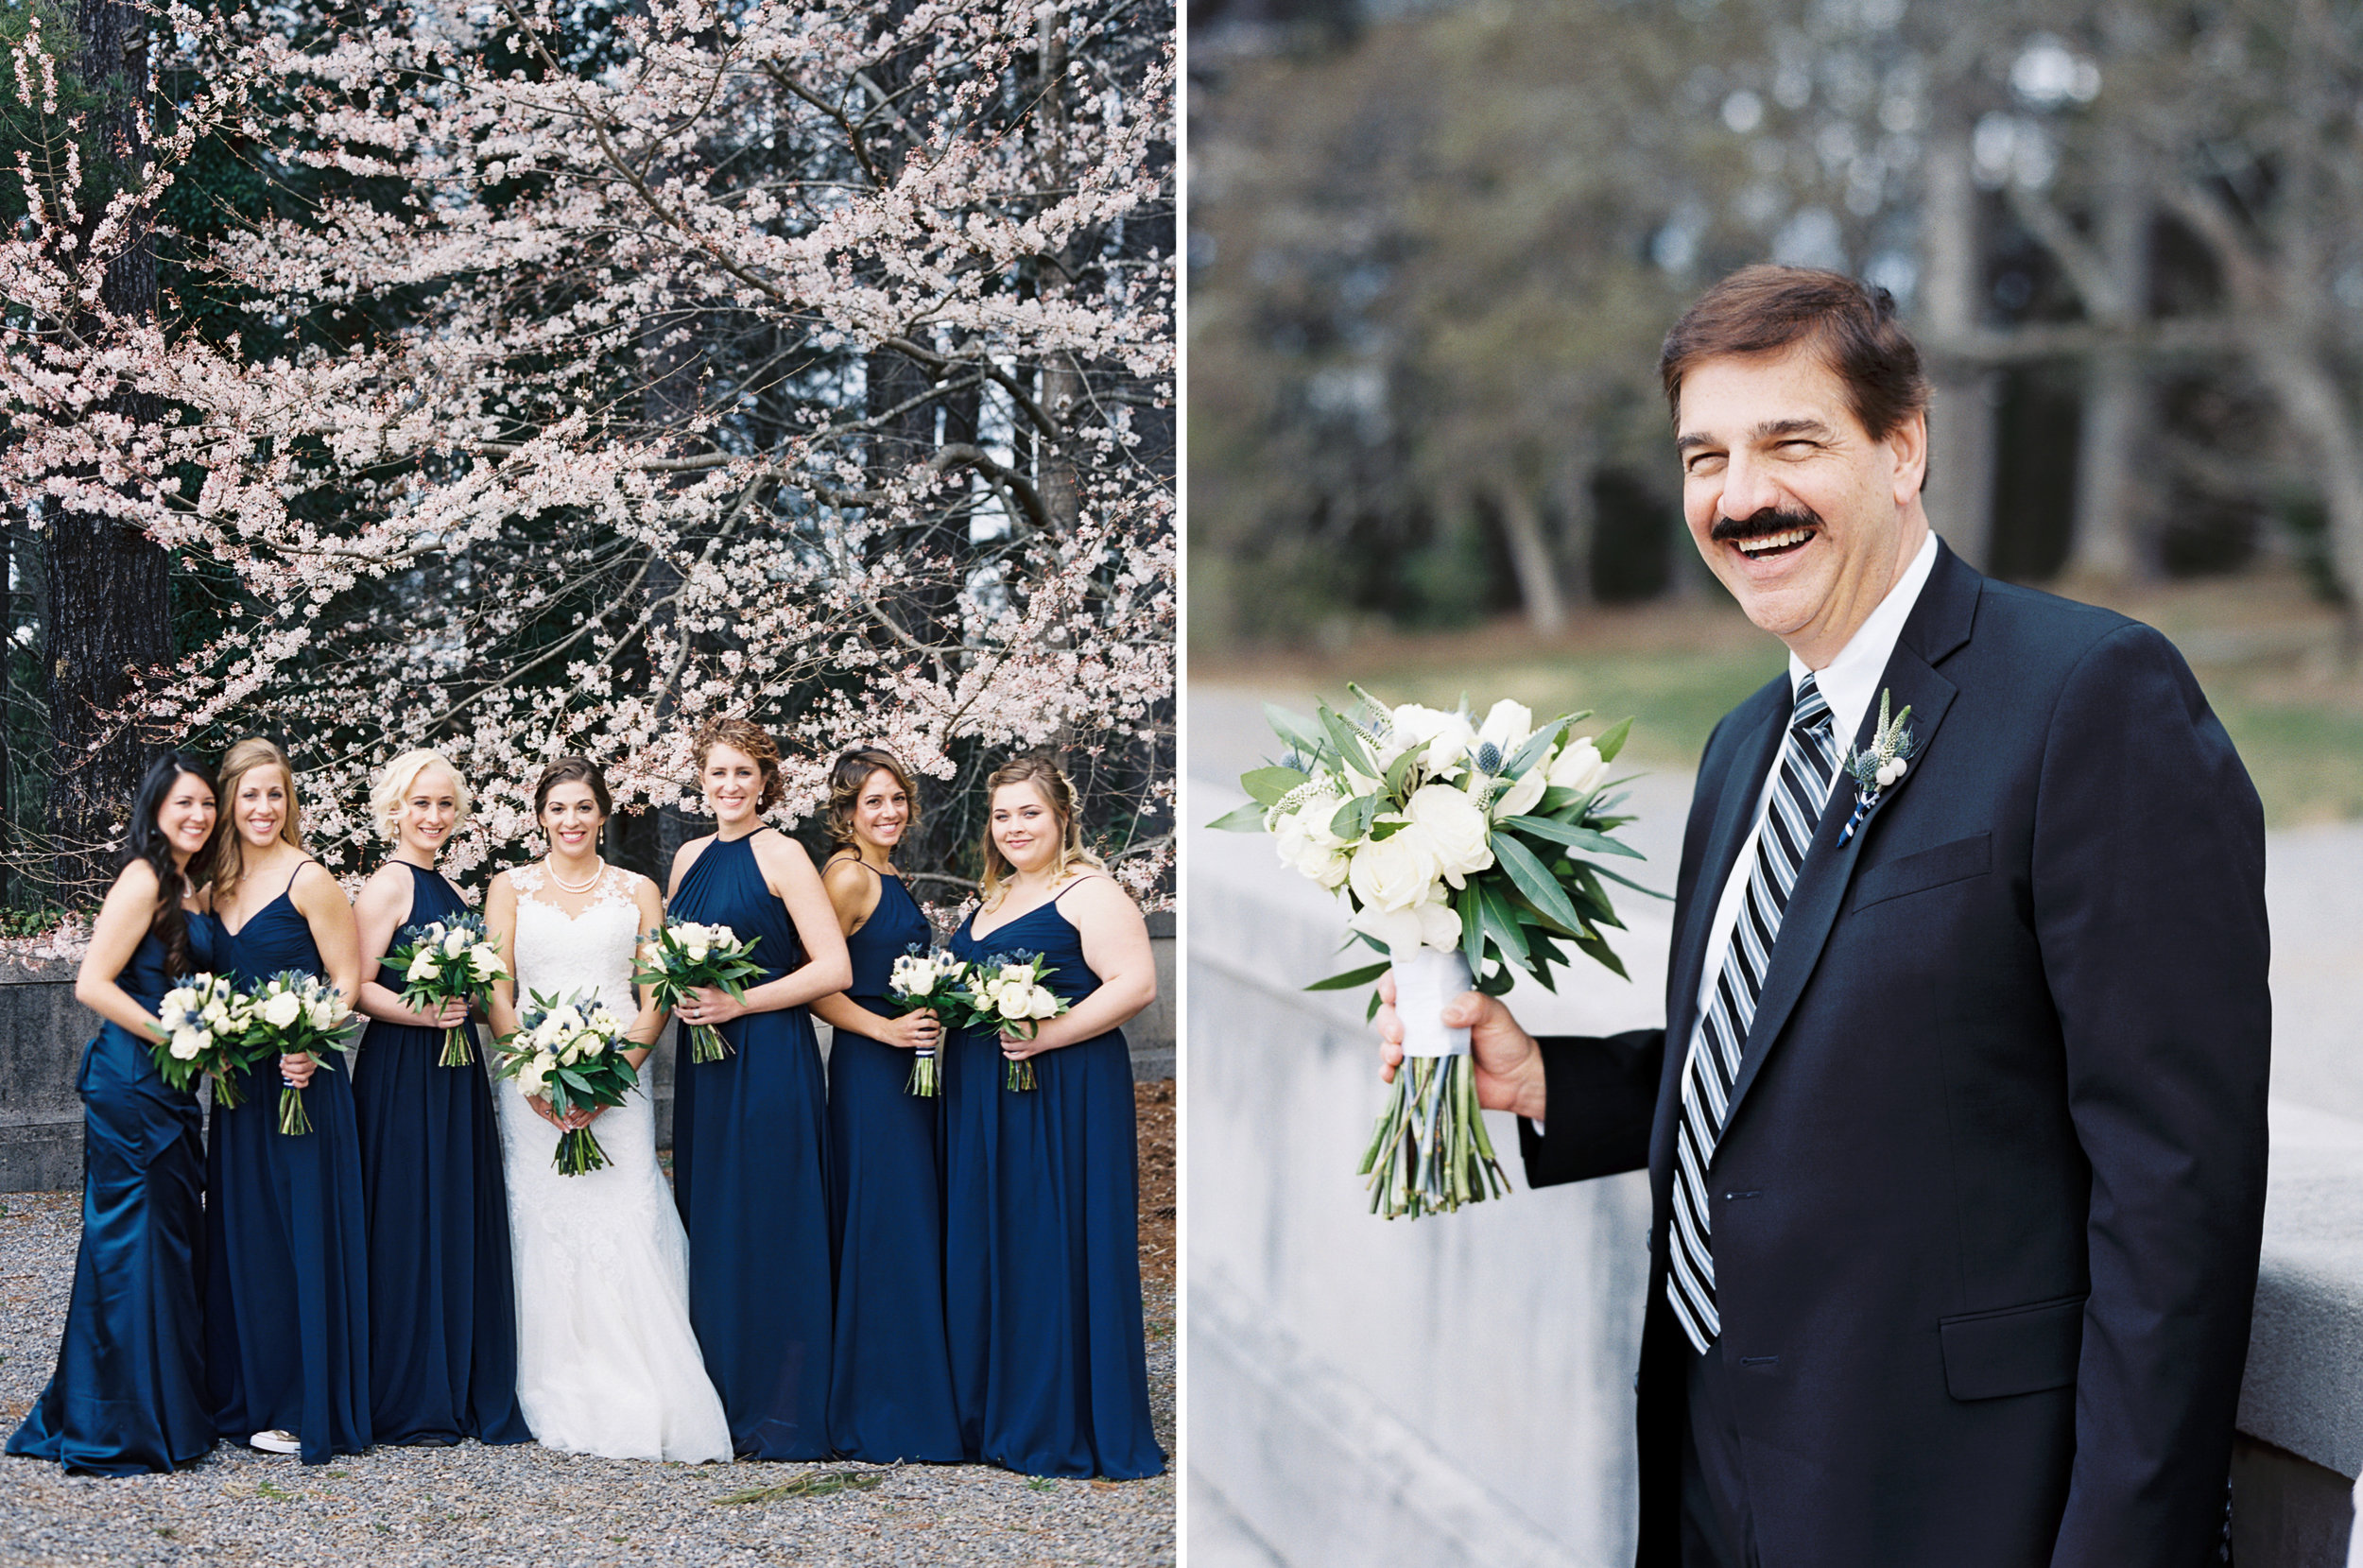 Asheville-wedding-Photographer-62.jpg